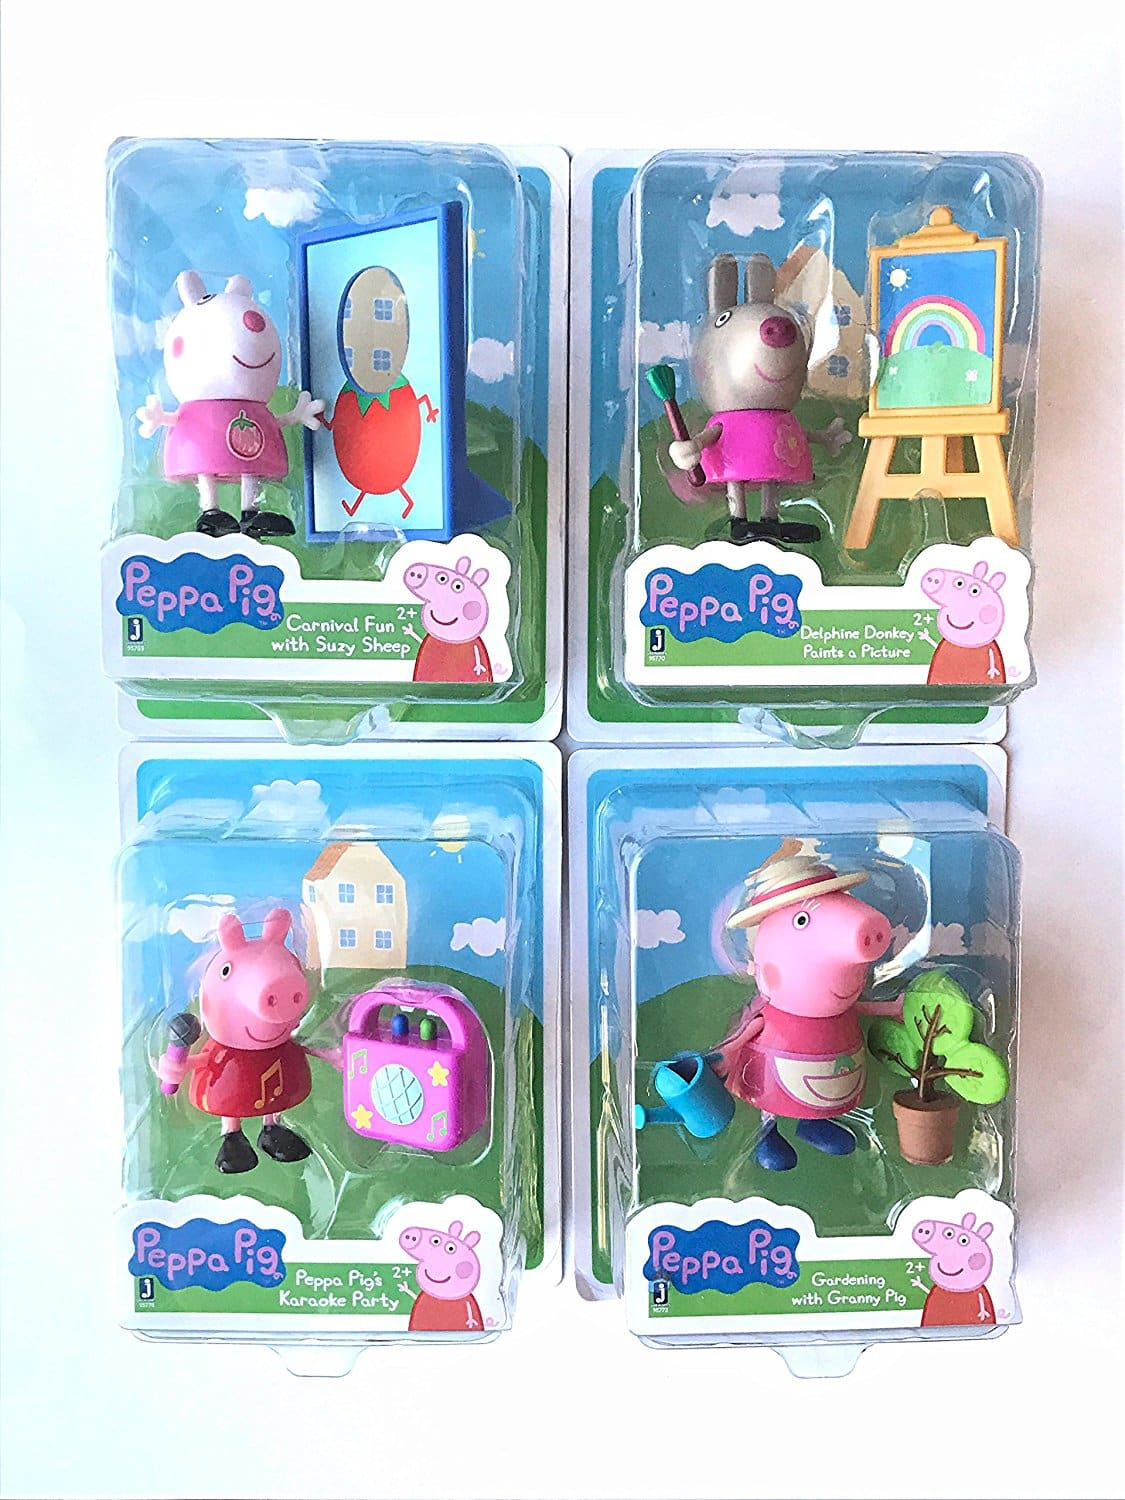 Set of 4 ~ Peppa Pig's Karaoke Party, Carnival Fun with Suzy Sheep, Delphine Donkey Paints a Picture and Gardening with Granny Pig